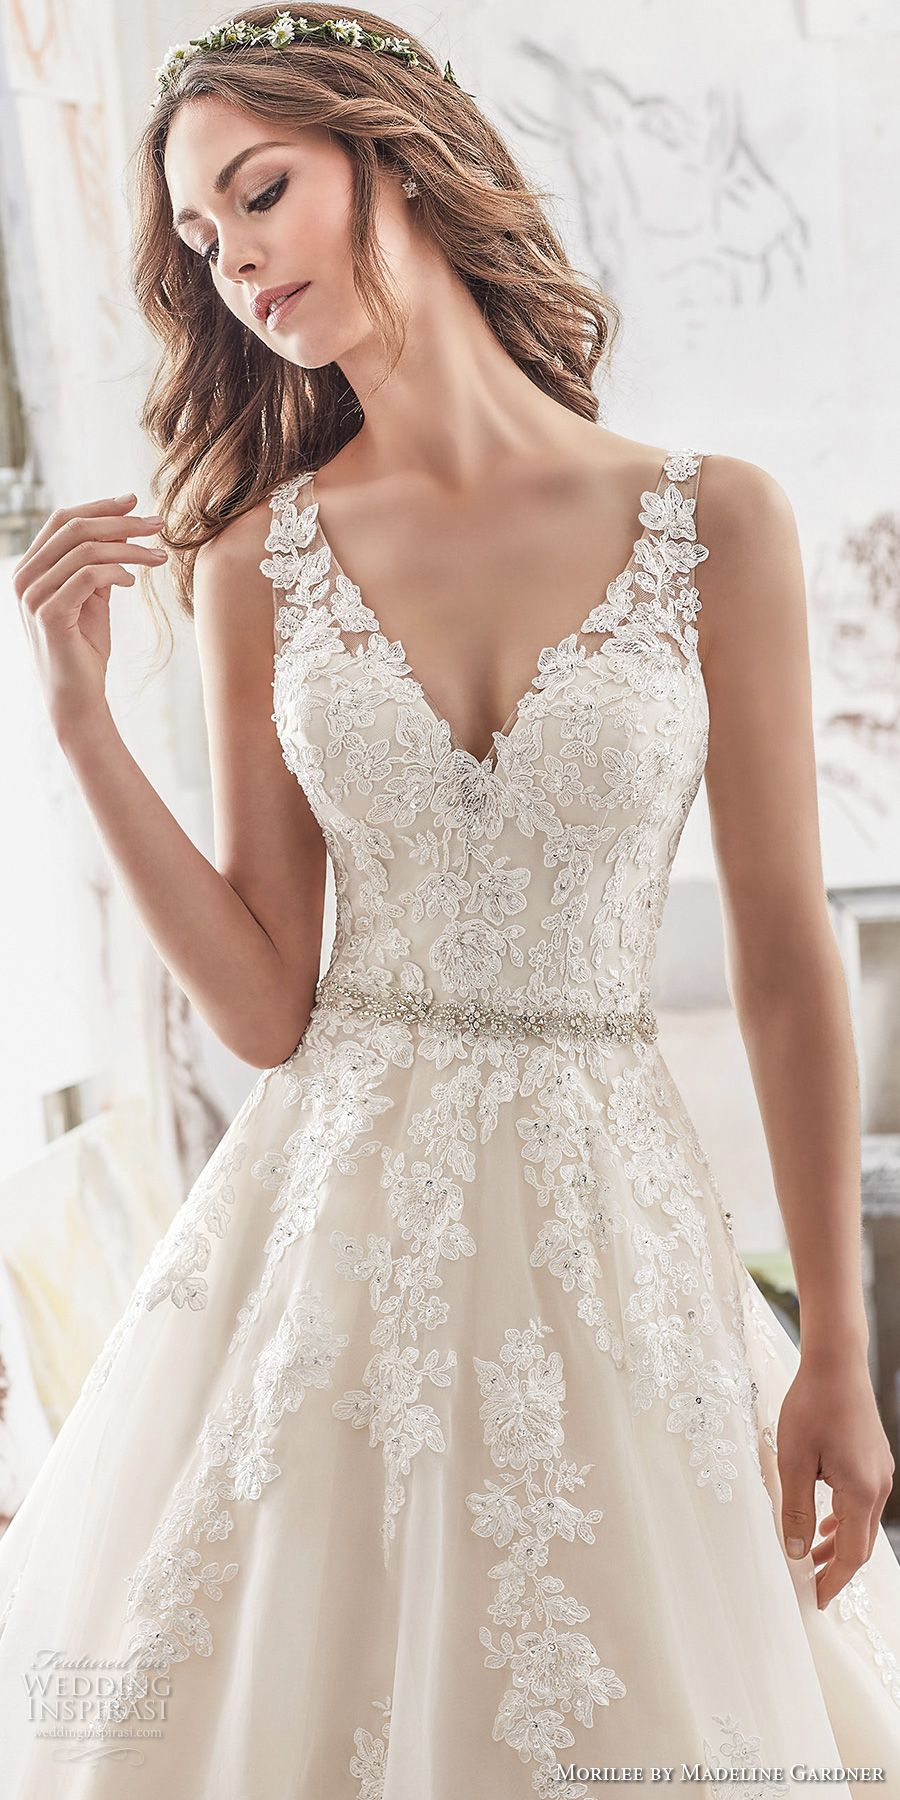 Mori lee madeline gardner wedding dress  Morilee by Madeline Gardner Spring  Wedding Dresses u Blu